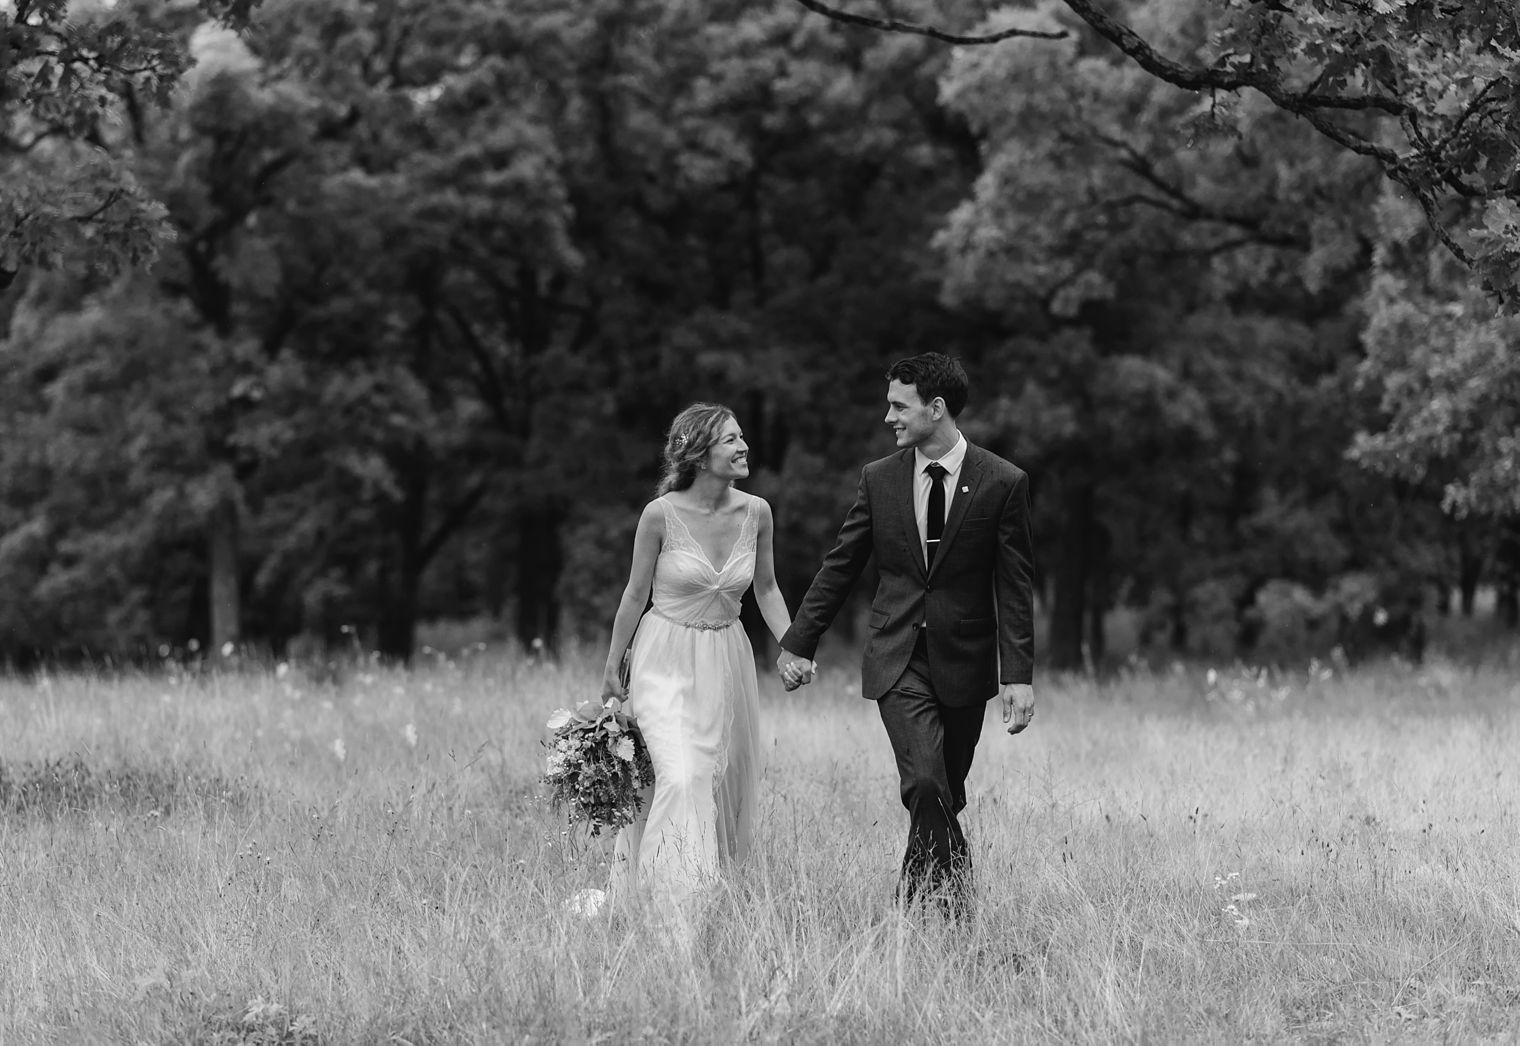 Occonomowoc wedding photos